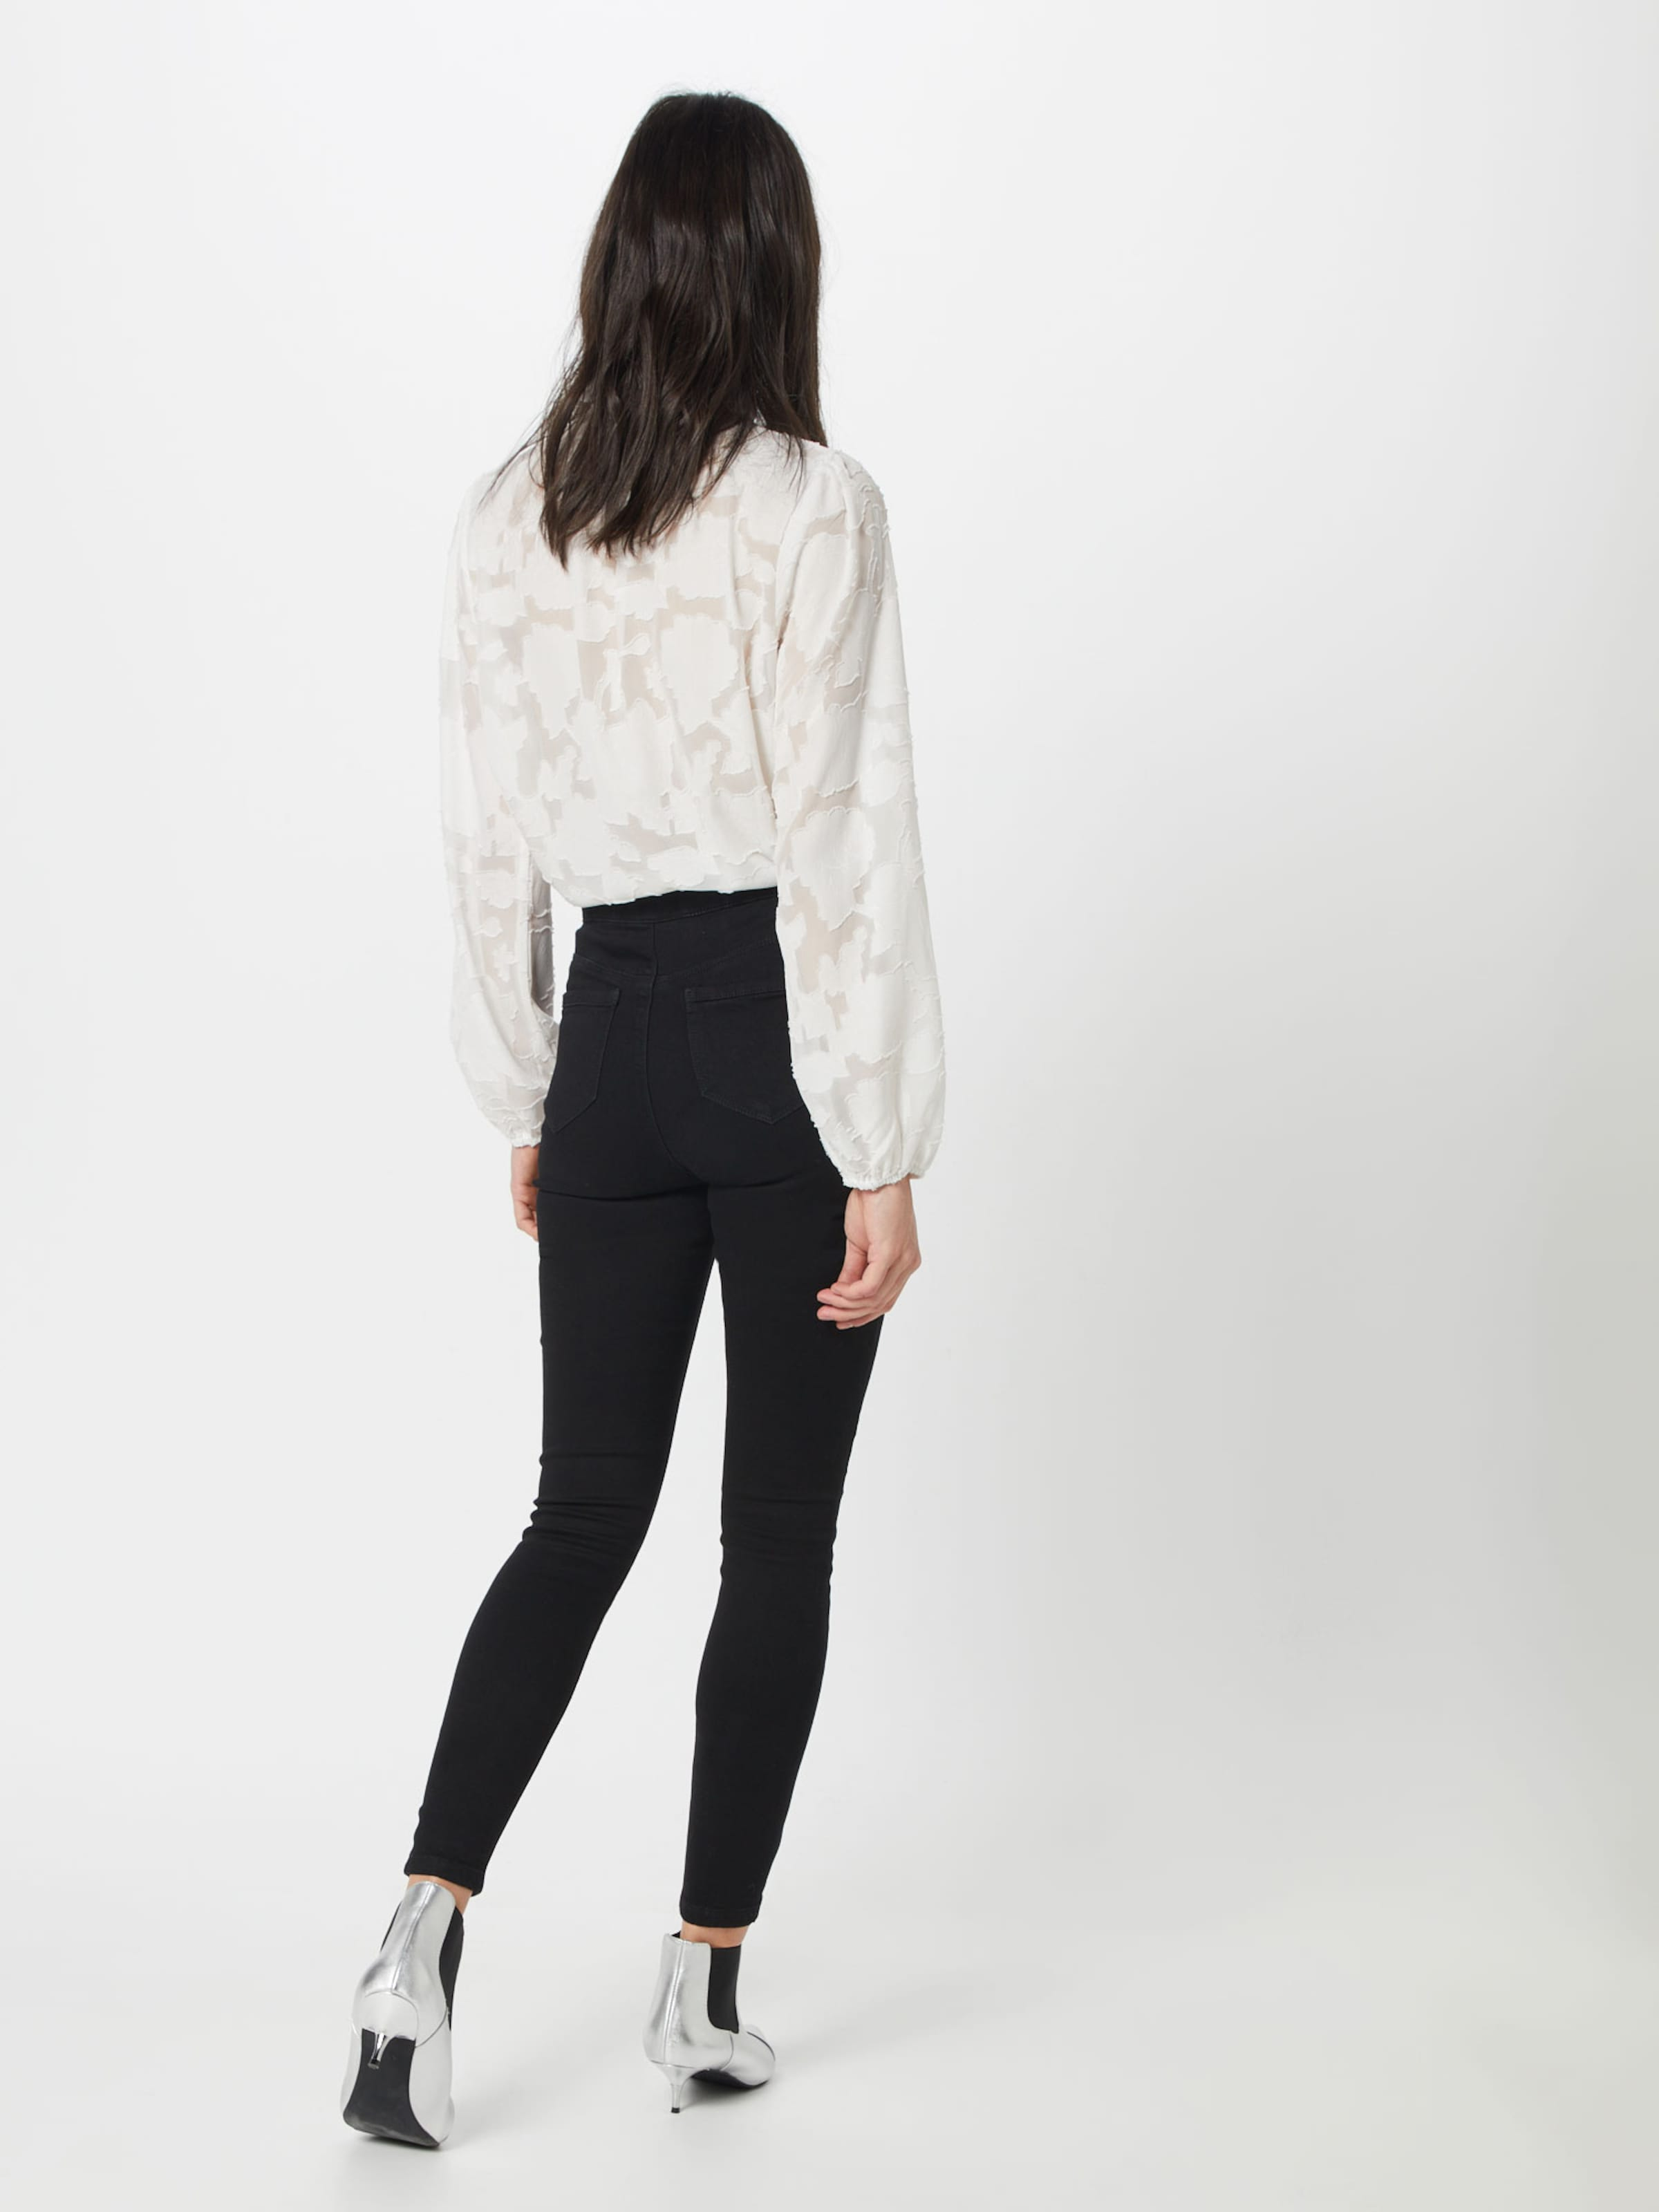 'vice' 'vice' Schwarz In Missguided Missguided Jeans In Missguided Schwarz Jeans Jeans 'vice' 2H9DIE